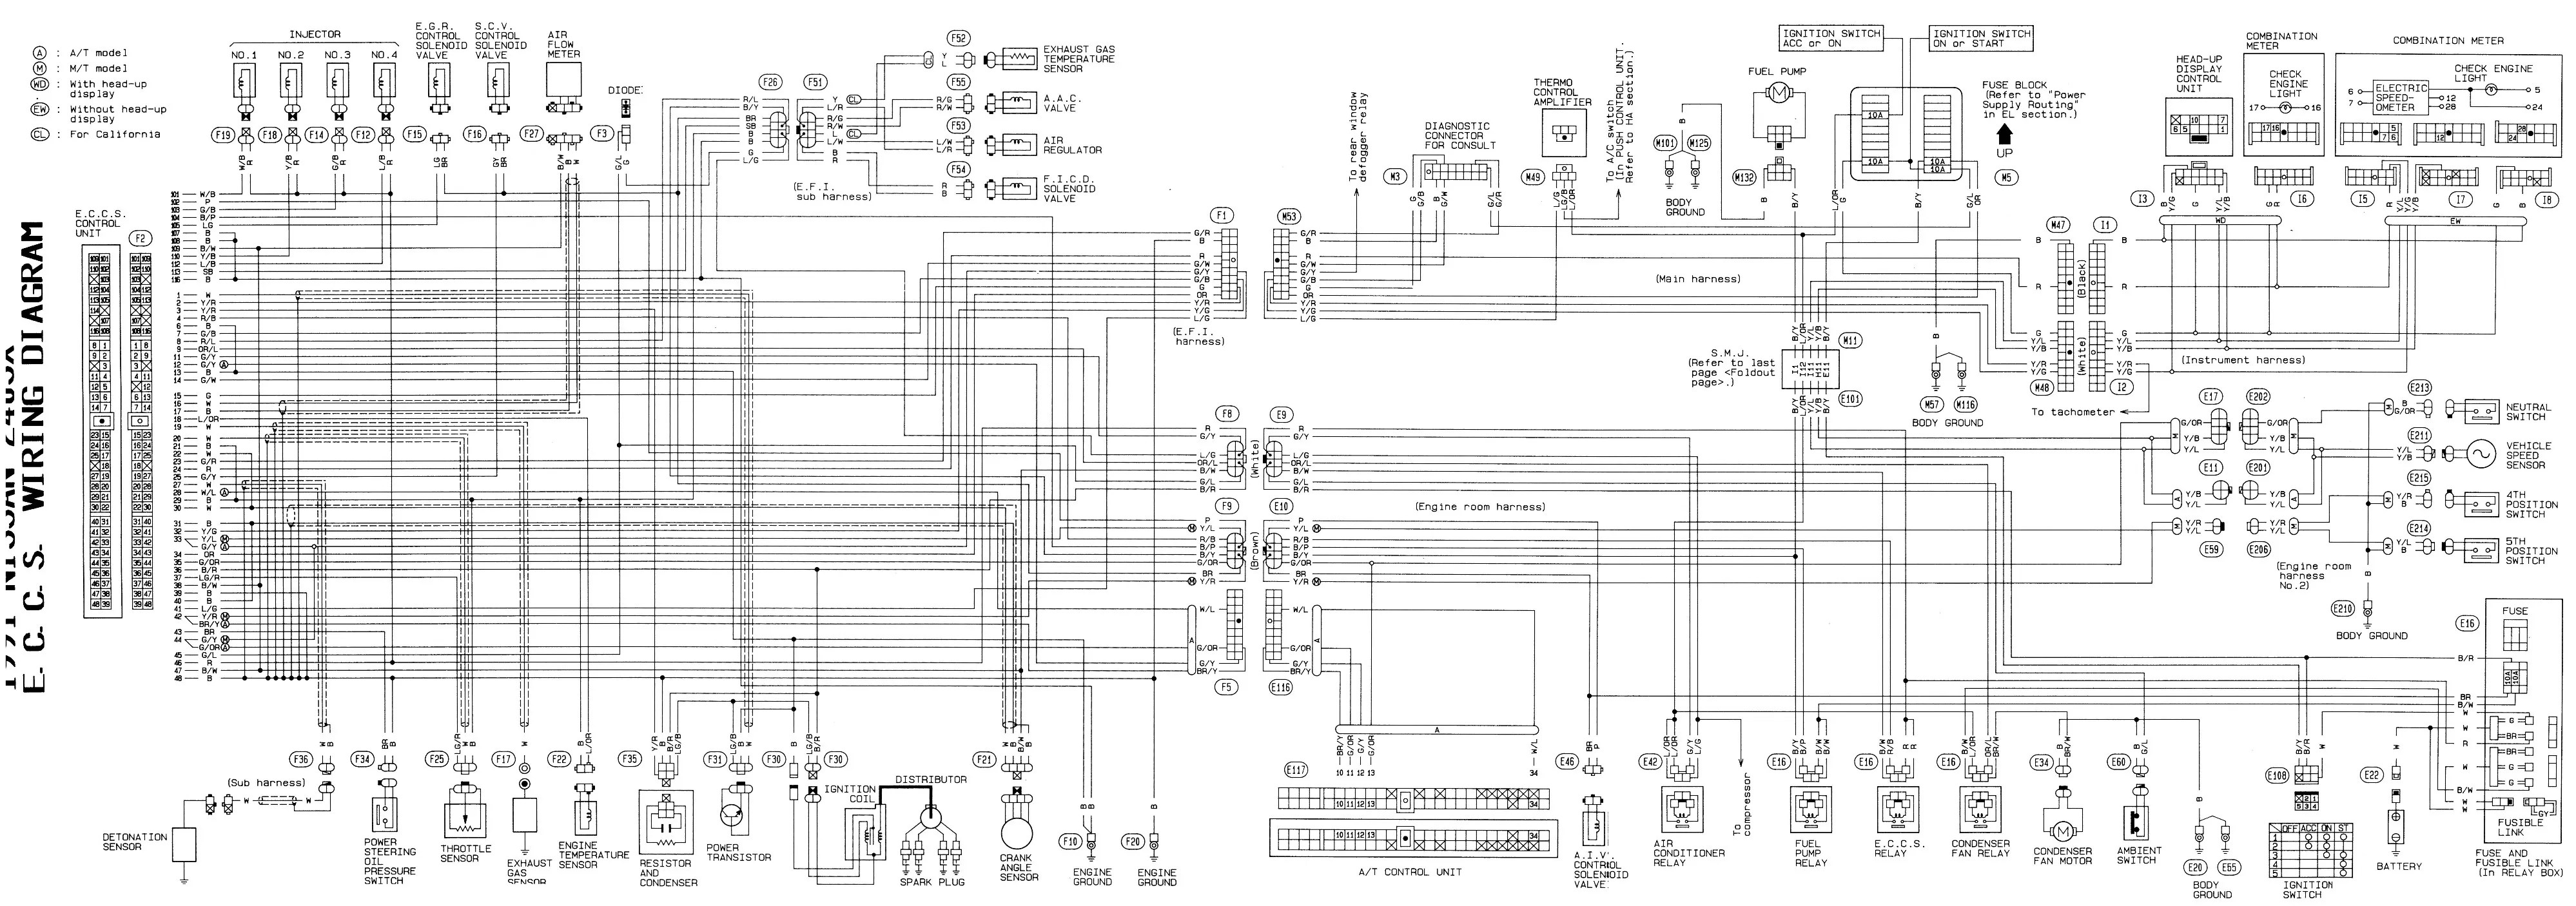 300zx Wire Harness Diagram   Wiring Diagram on